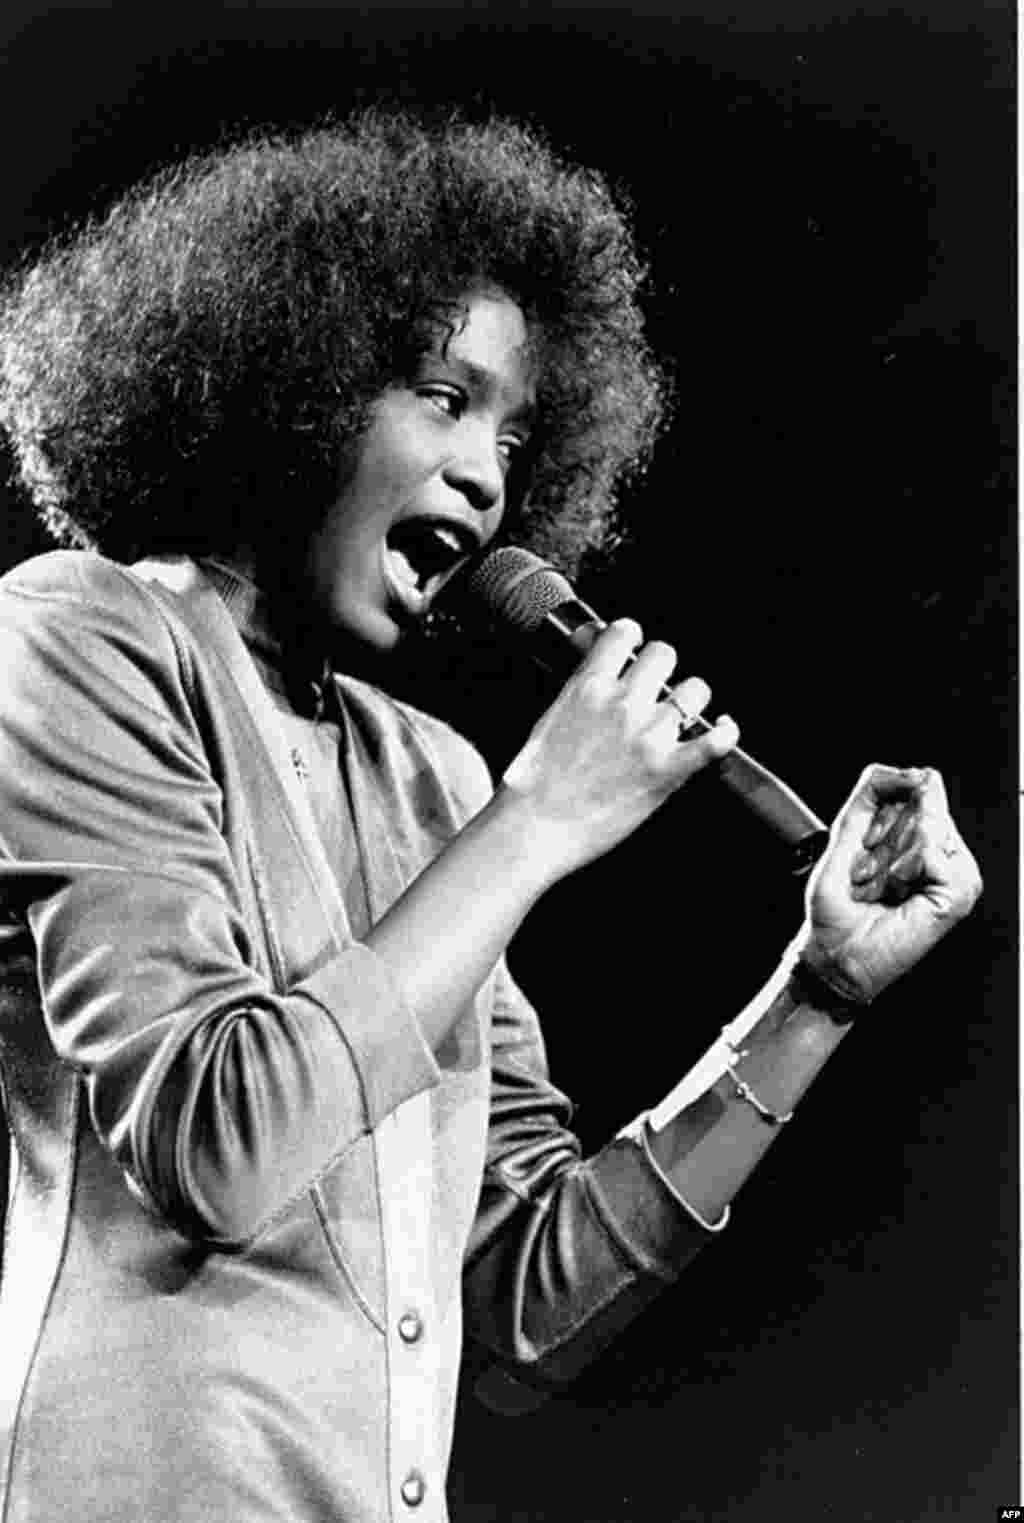 In this May 10, 1986 photo, American singer Whitney Houston sings during a benefit concert at Boston Garden. Houston died February 11, 2012, at age 48. (AP)